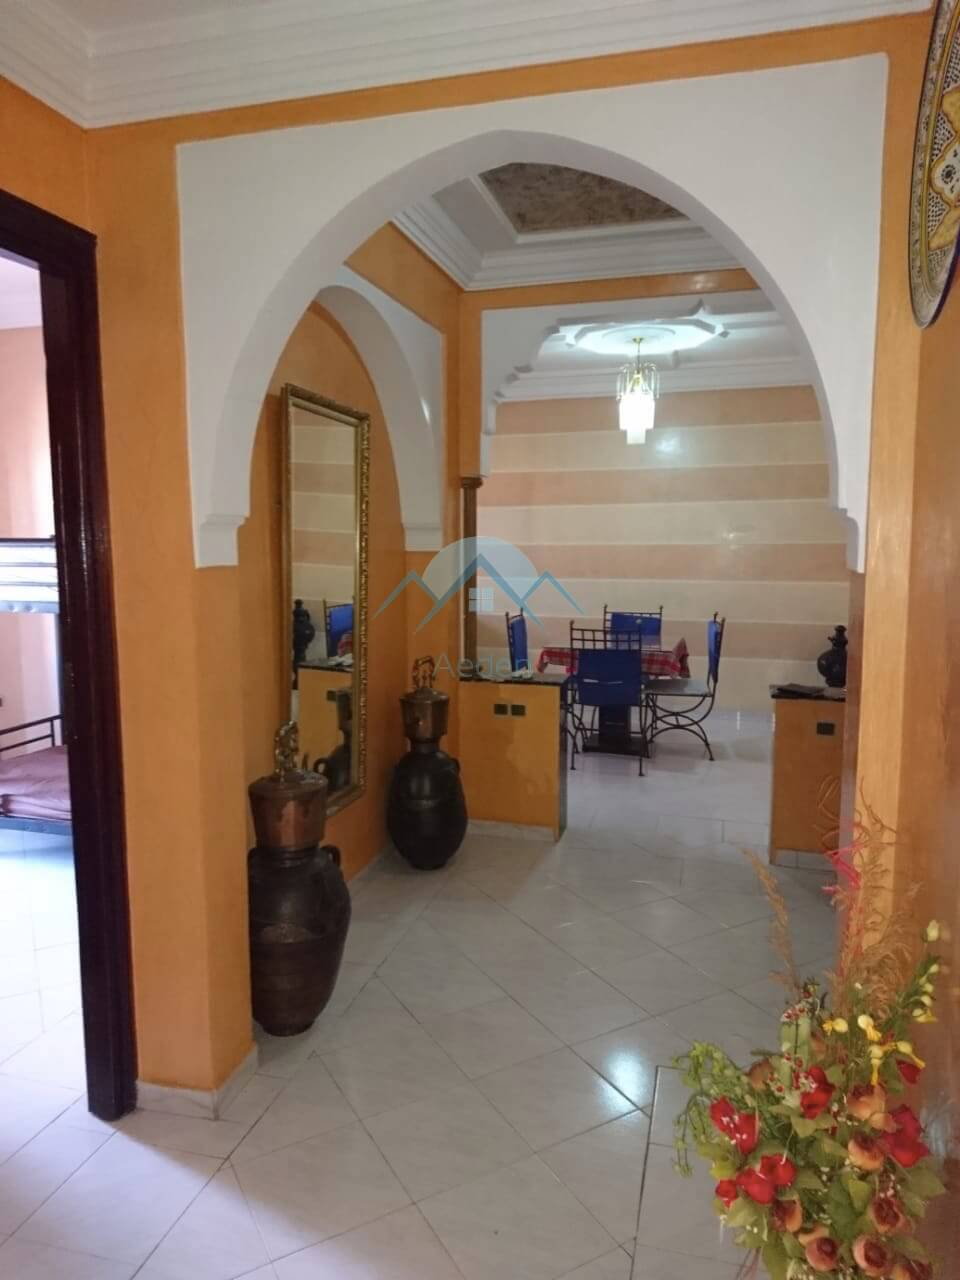 MARRAKECH GUELIZ ,APPARTEMENT 84 m